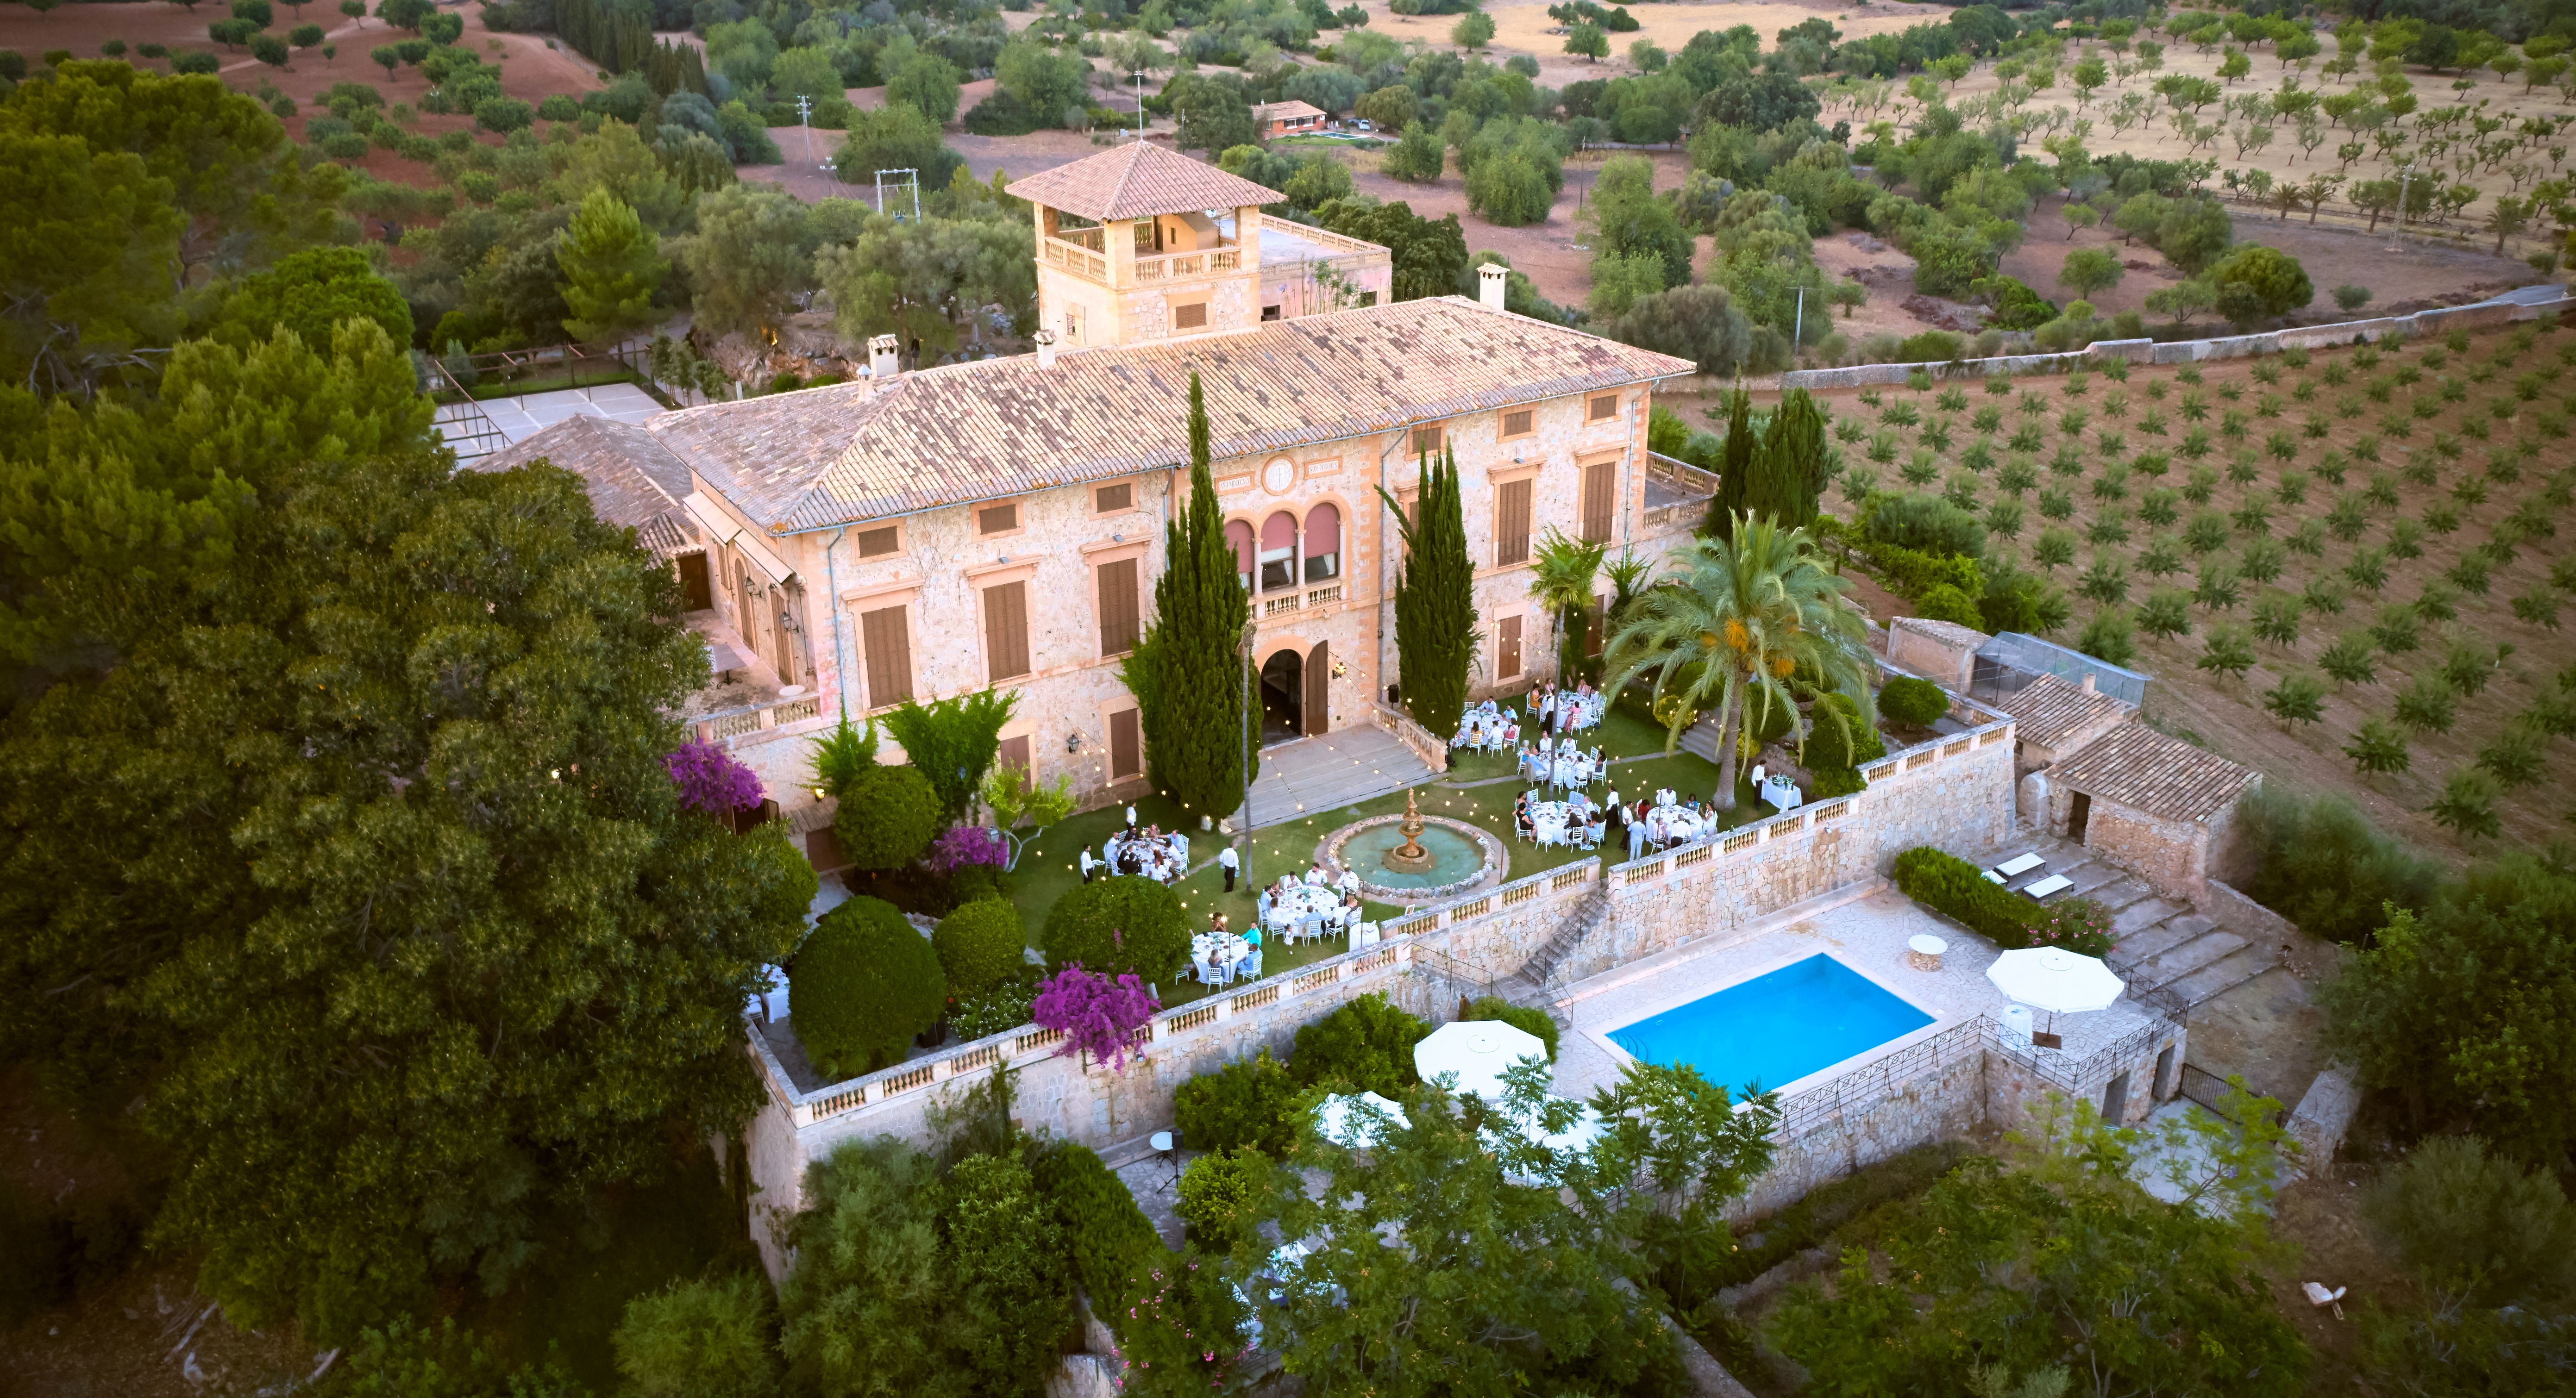 The stunning Finca in Mallorca, Thad Medford Photography